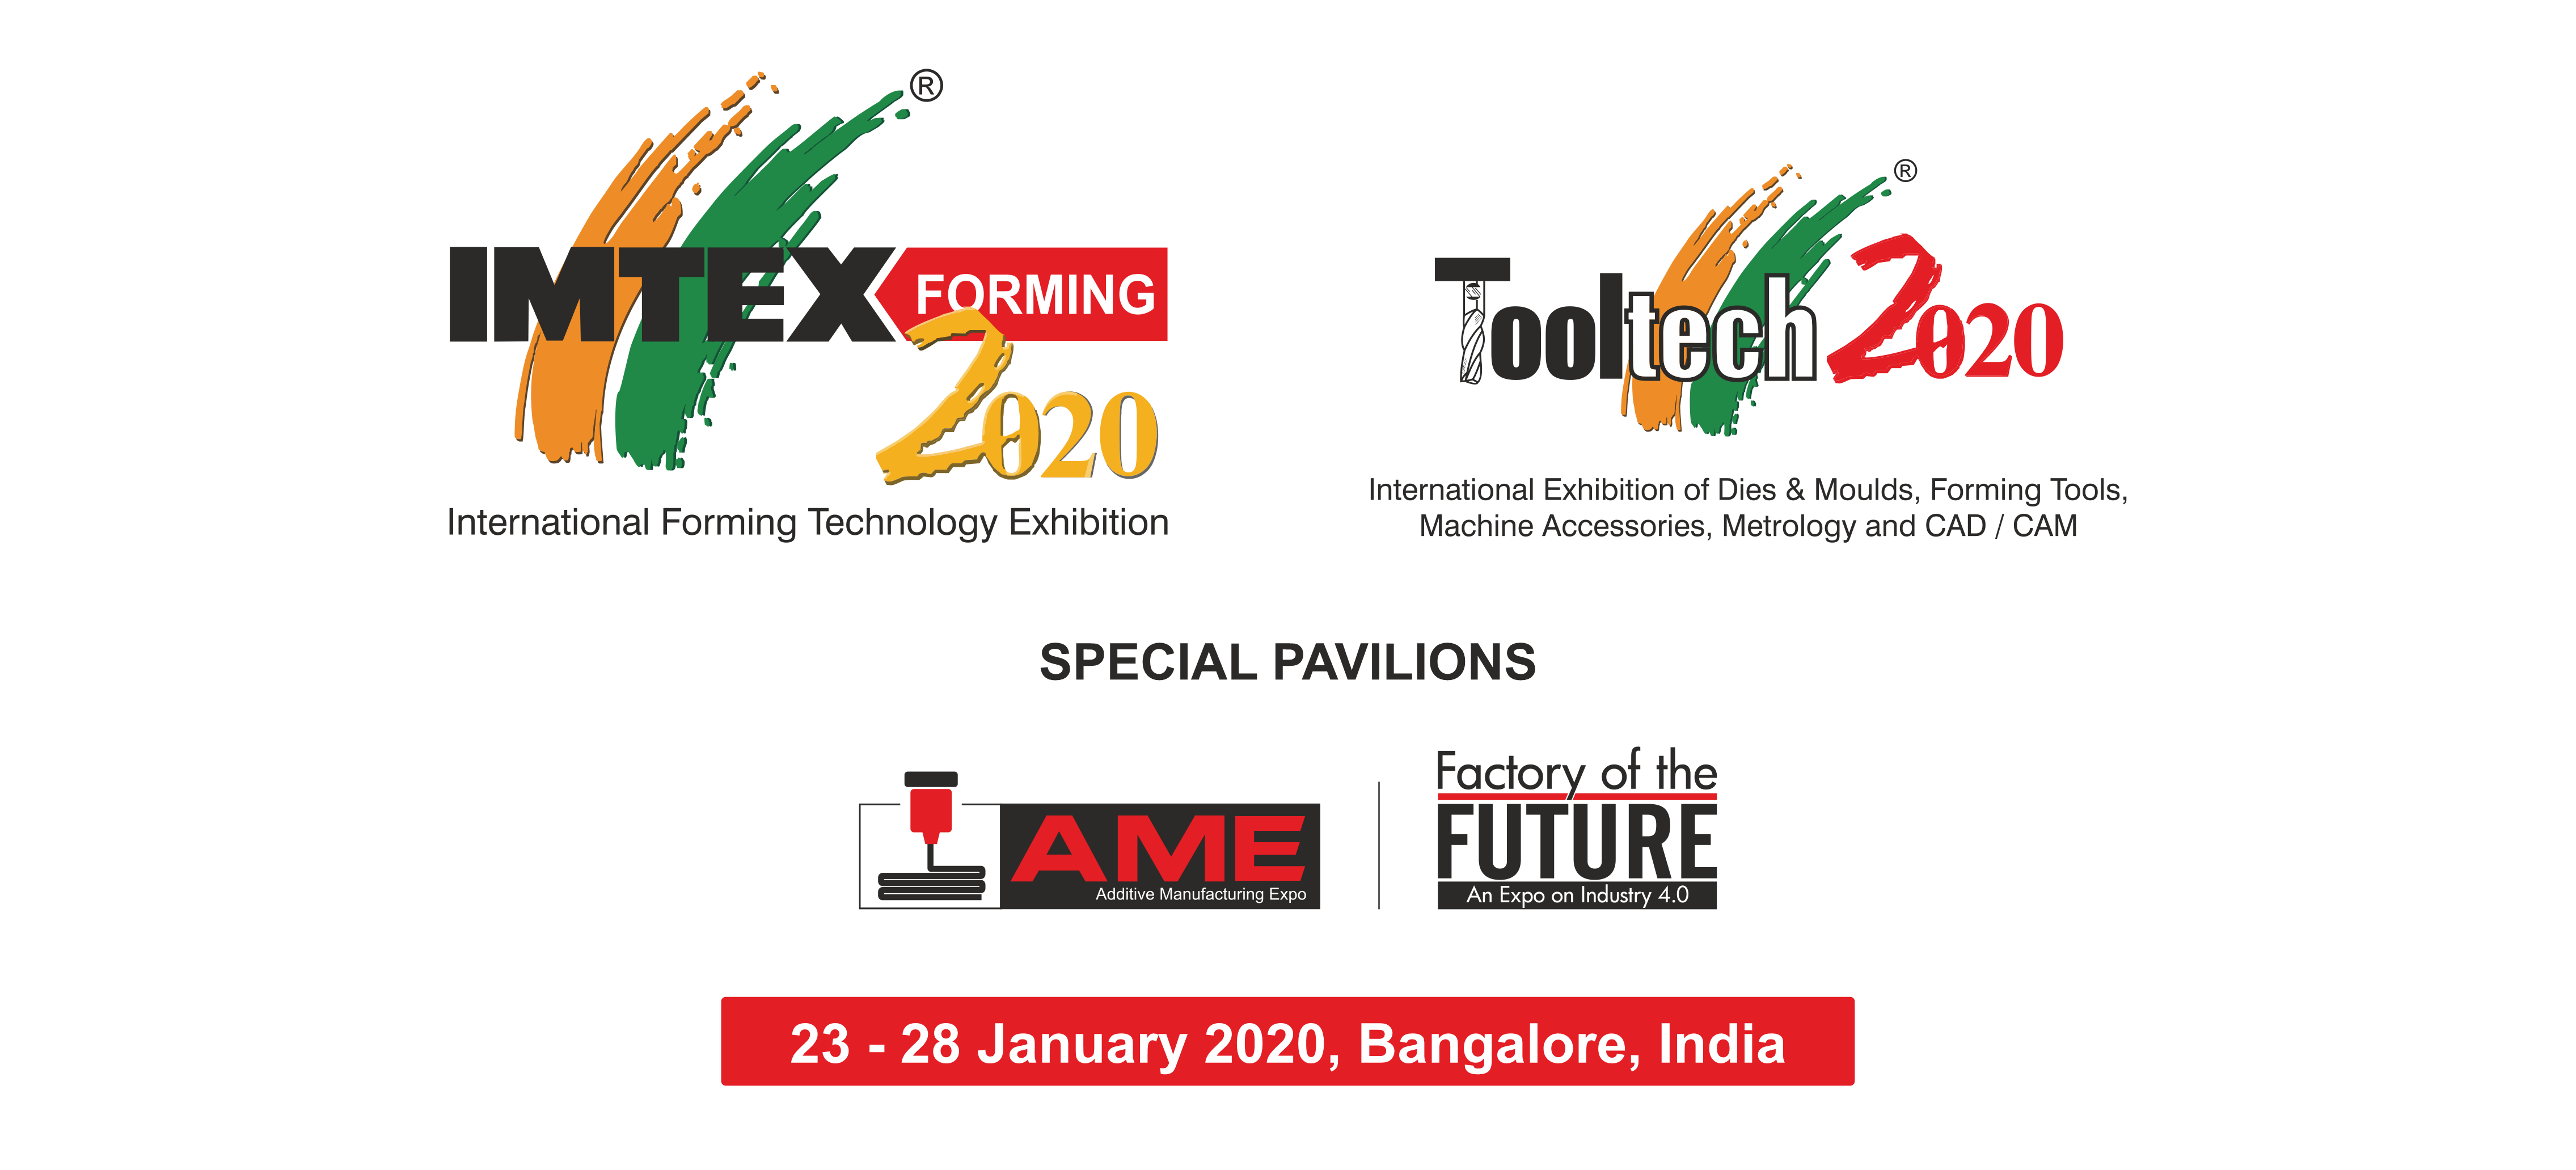 IMTEX FORMING 2020 / TOOLTECH 2020